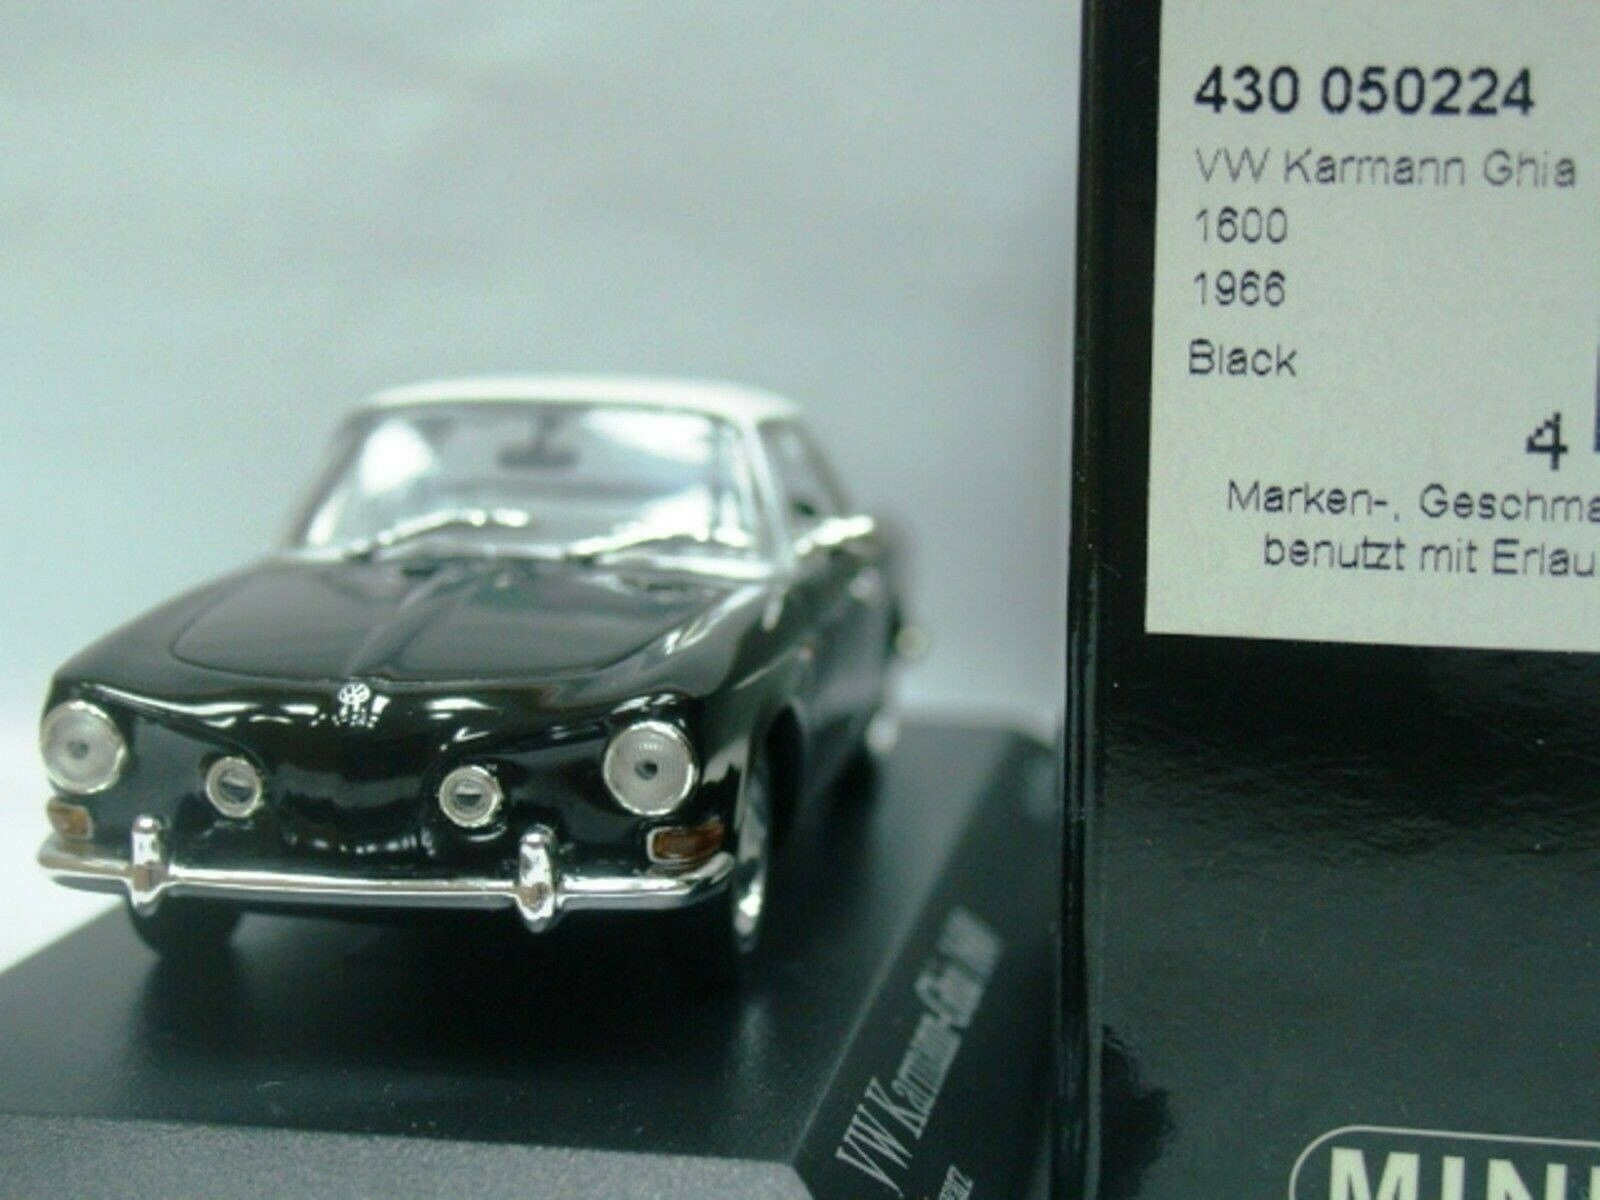 WOW estremamente raro VW KARMANN GHIA COUPE 'T34 1600 1966 Nero 1 43 Minichamps